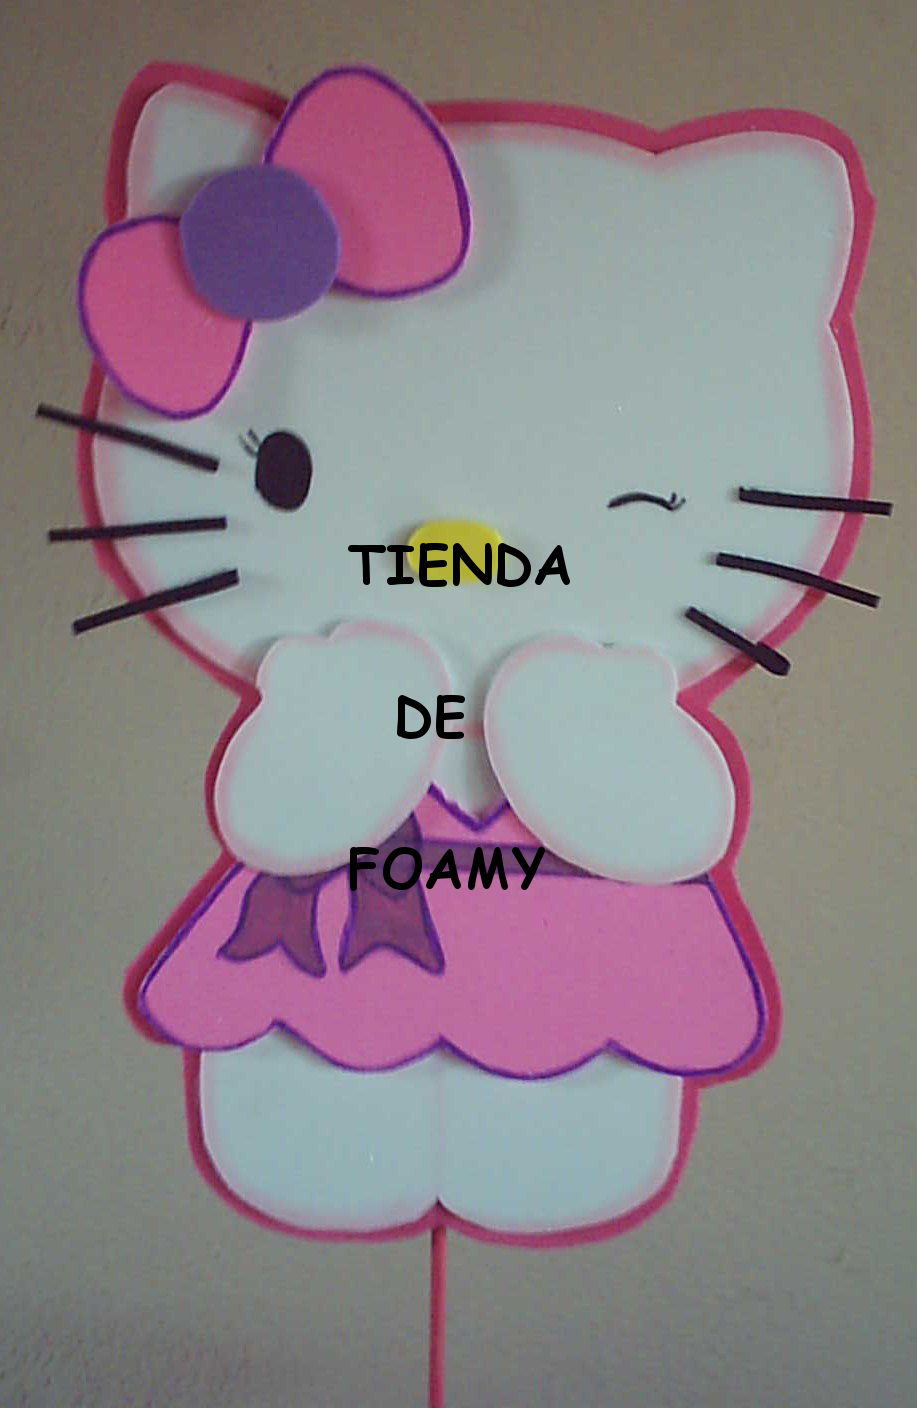 Pin Tienda Foamy Centro Mesa Mini Dispensador Hello Kitty on Pinterest